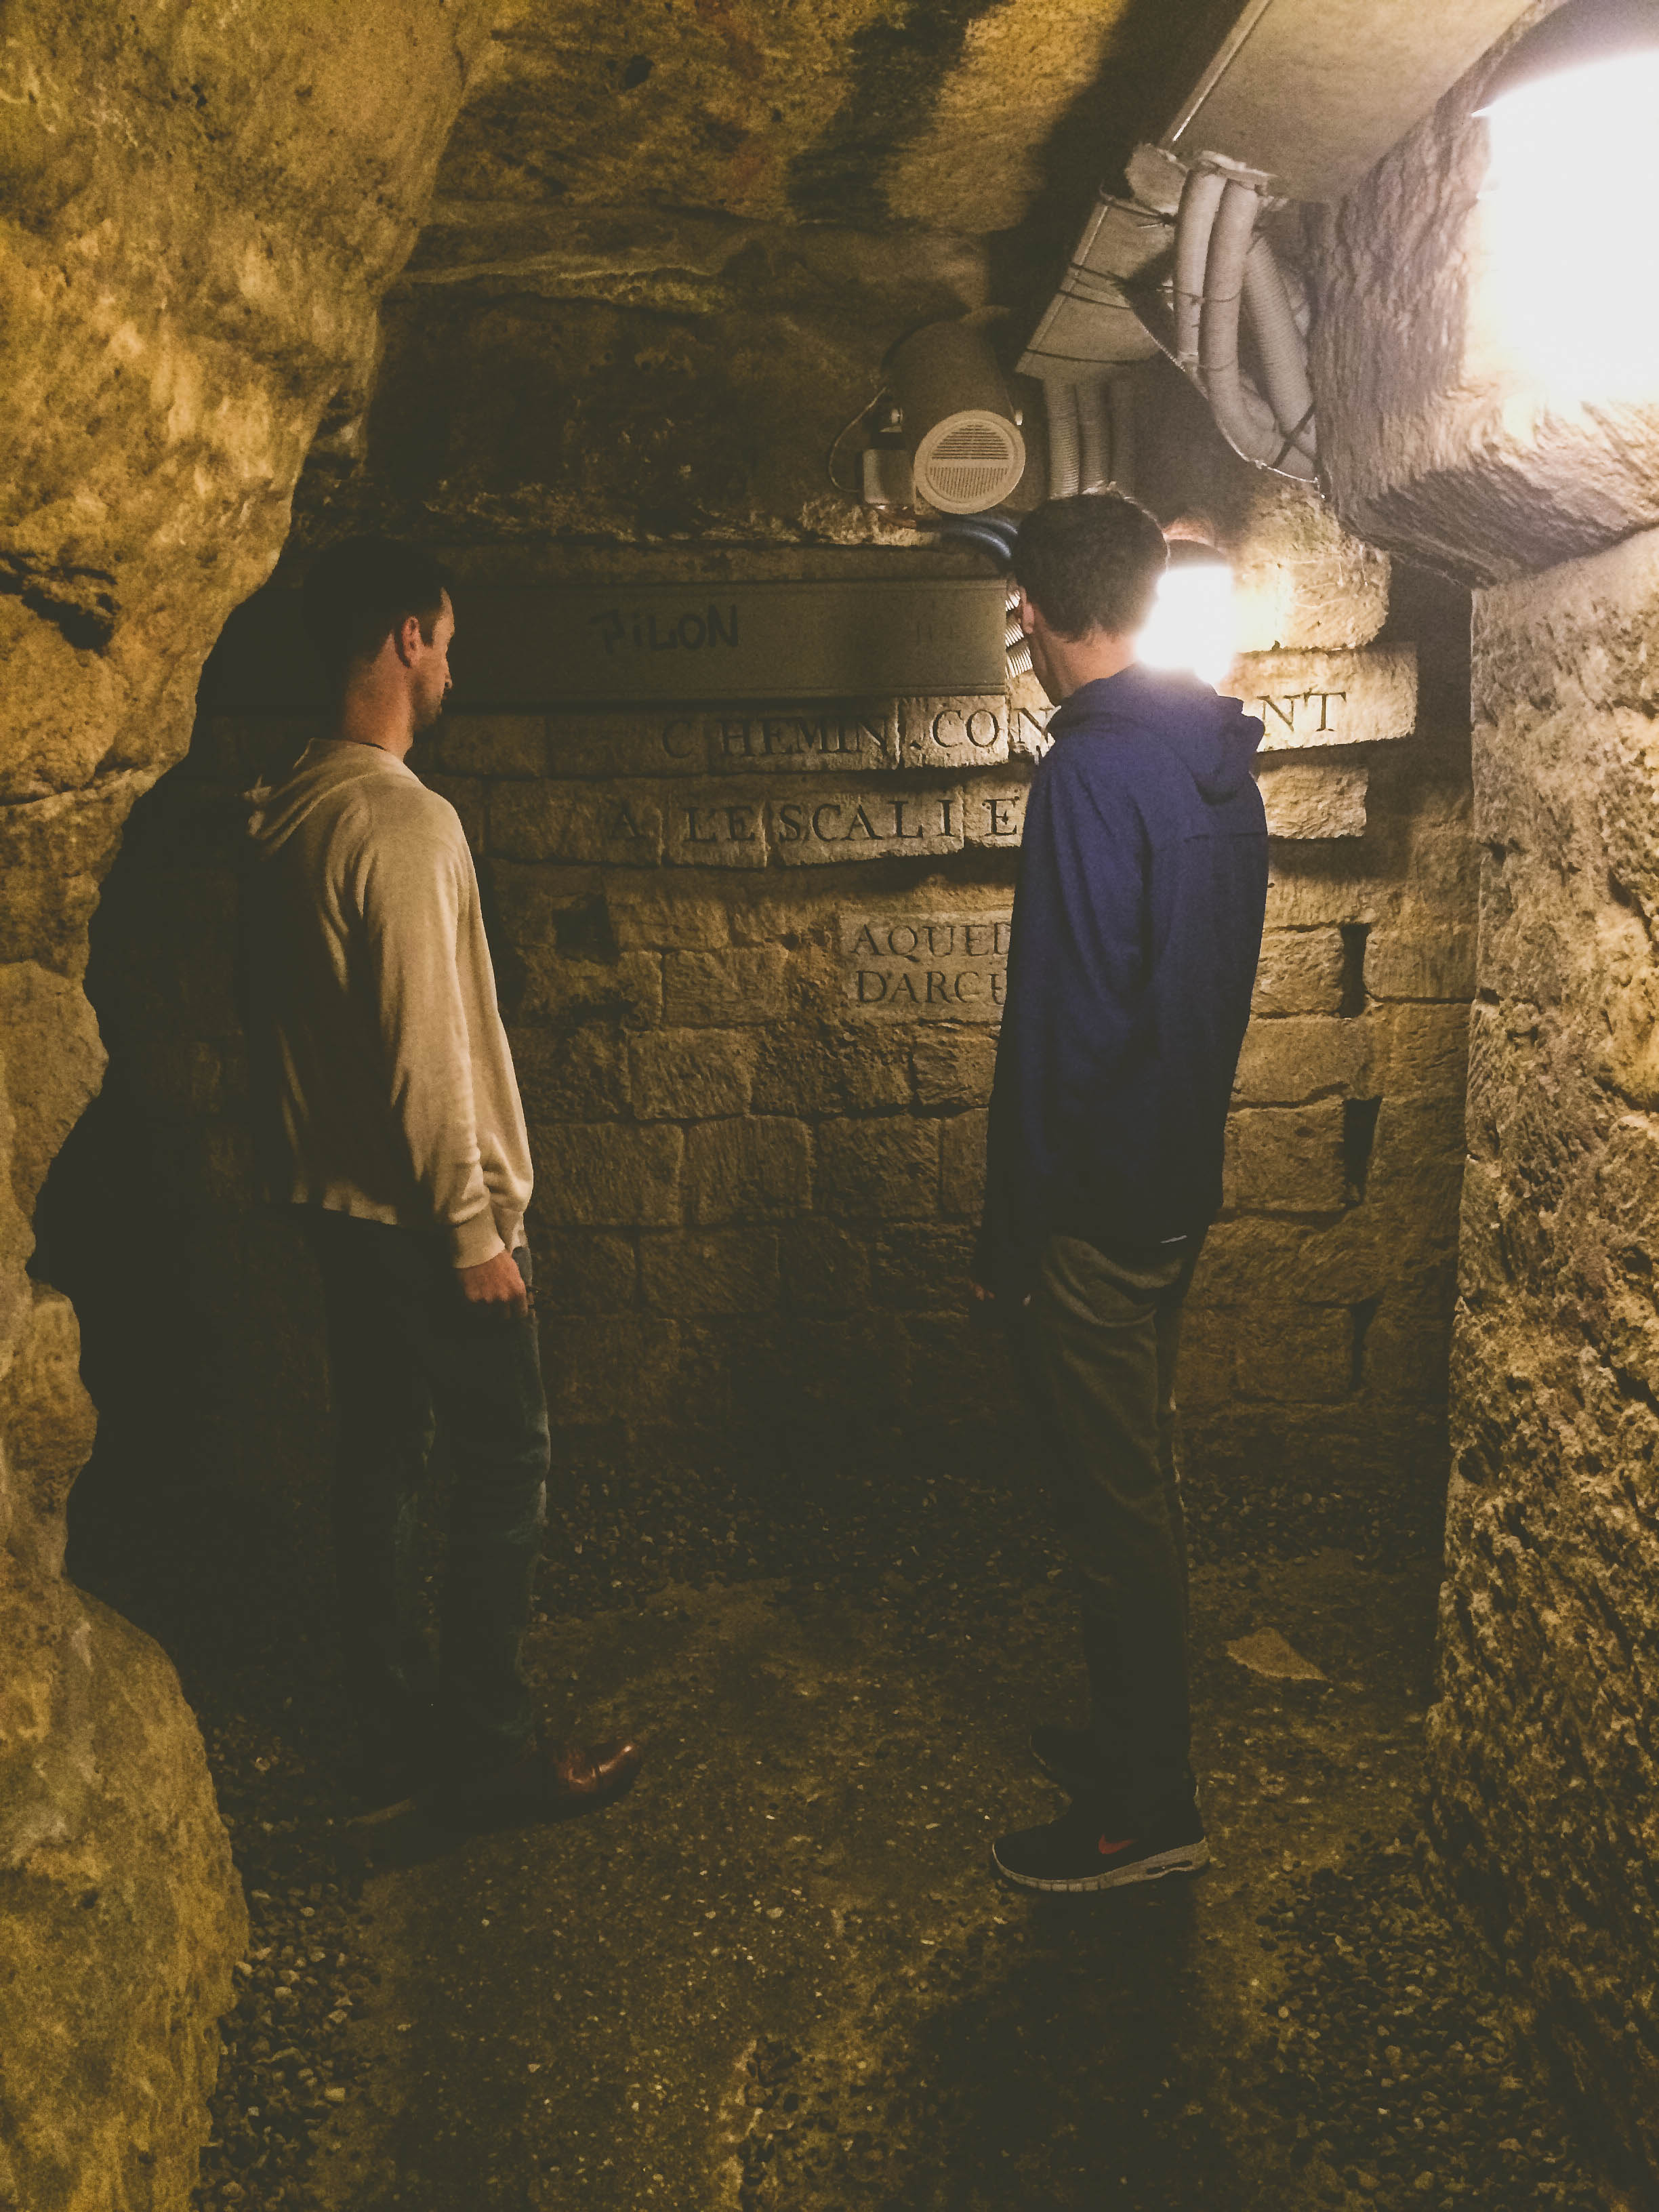 Steve and Chris reading about the history of the catacombs.